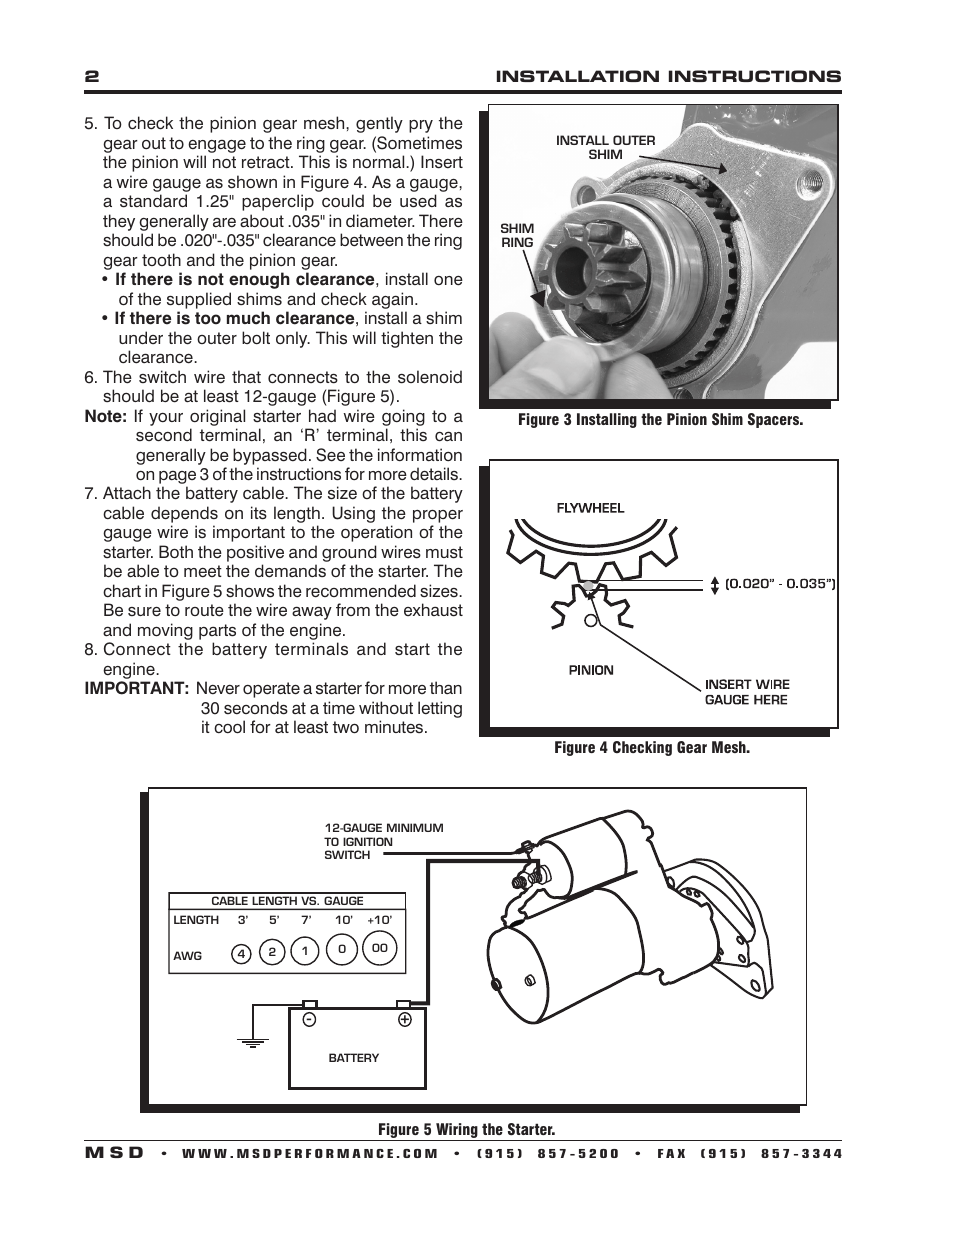 medium resolution of msd 50951 dynaforce starter chevy 168 tooth staggered mount installation user manual page 2 4